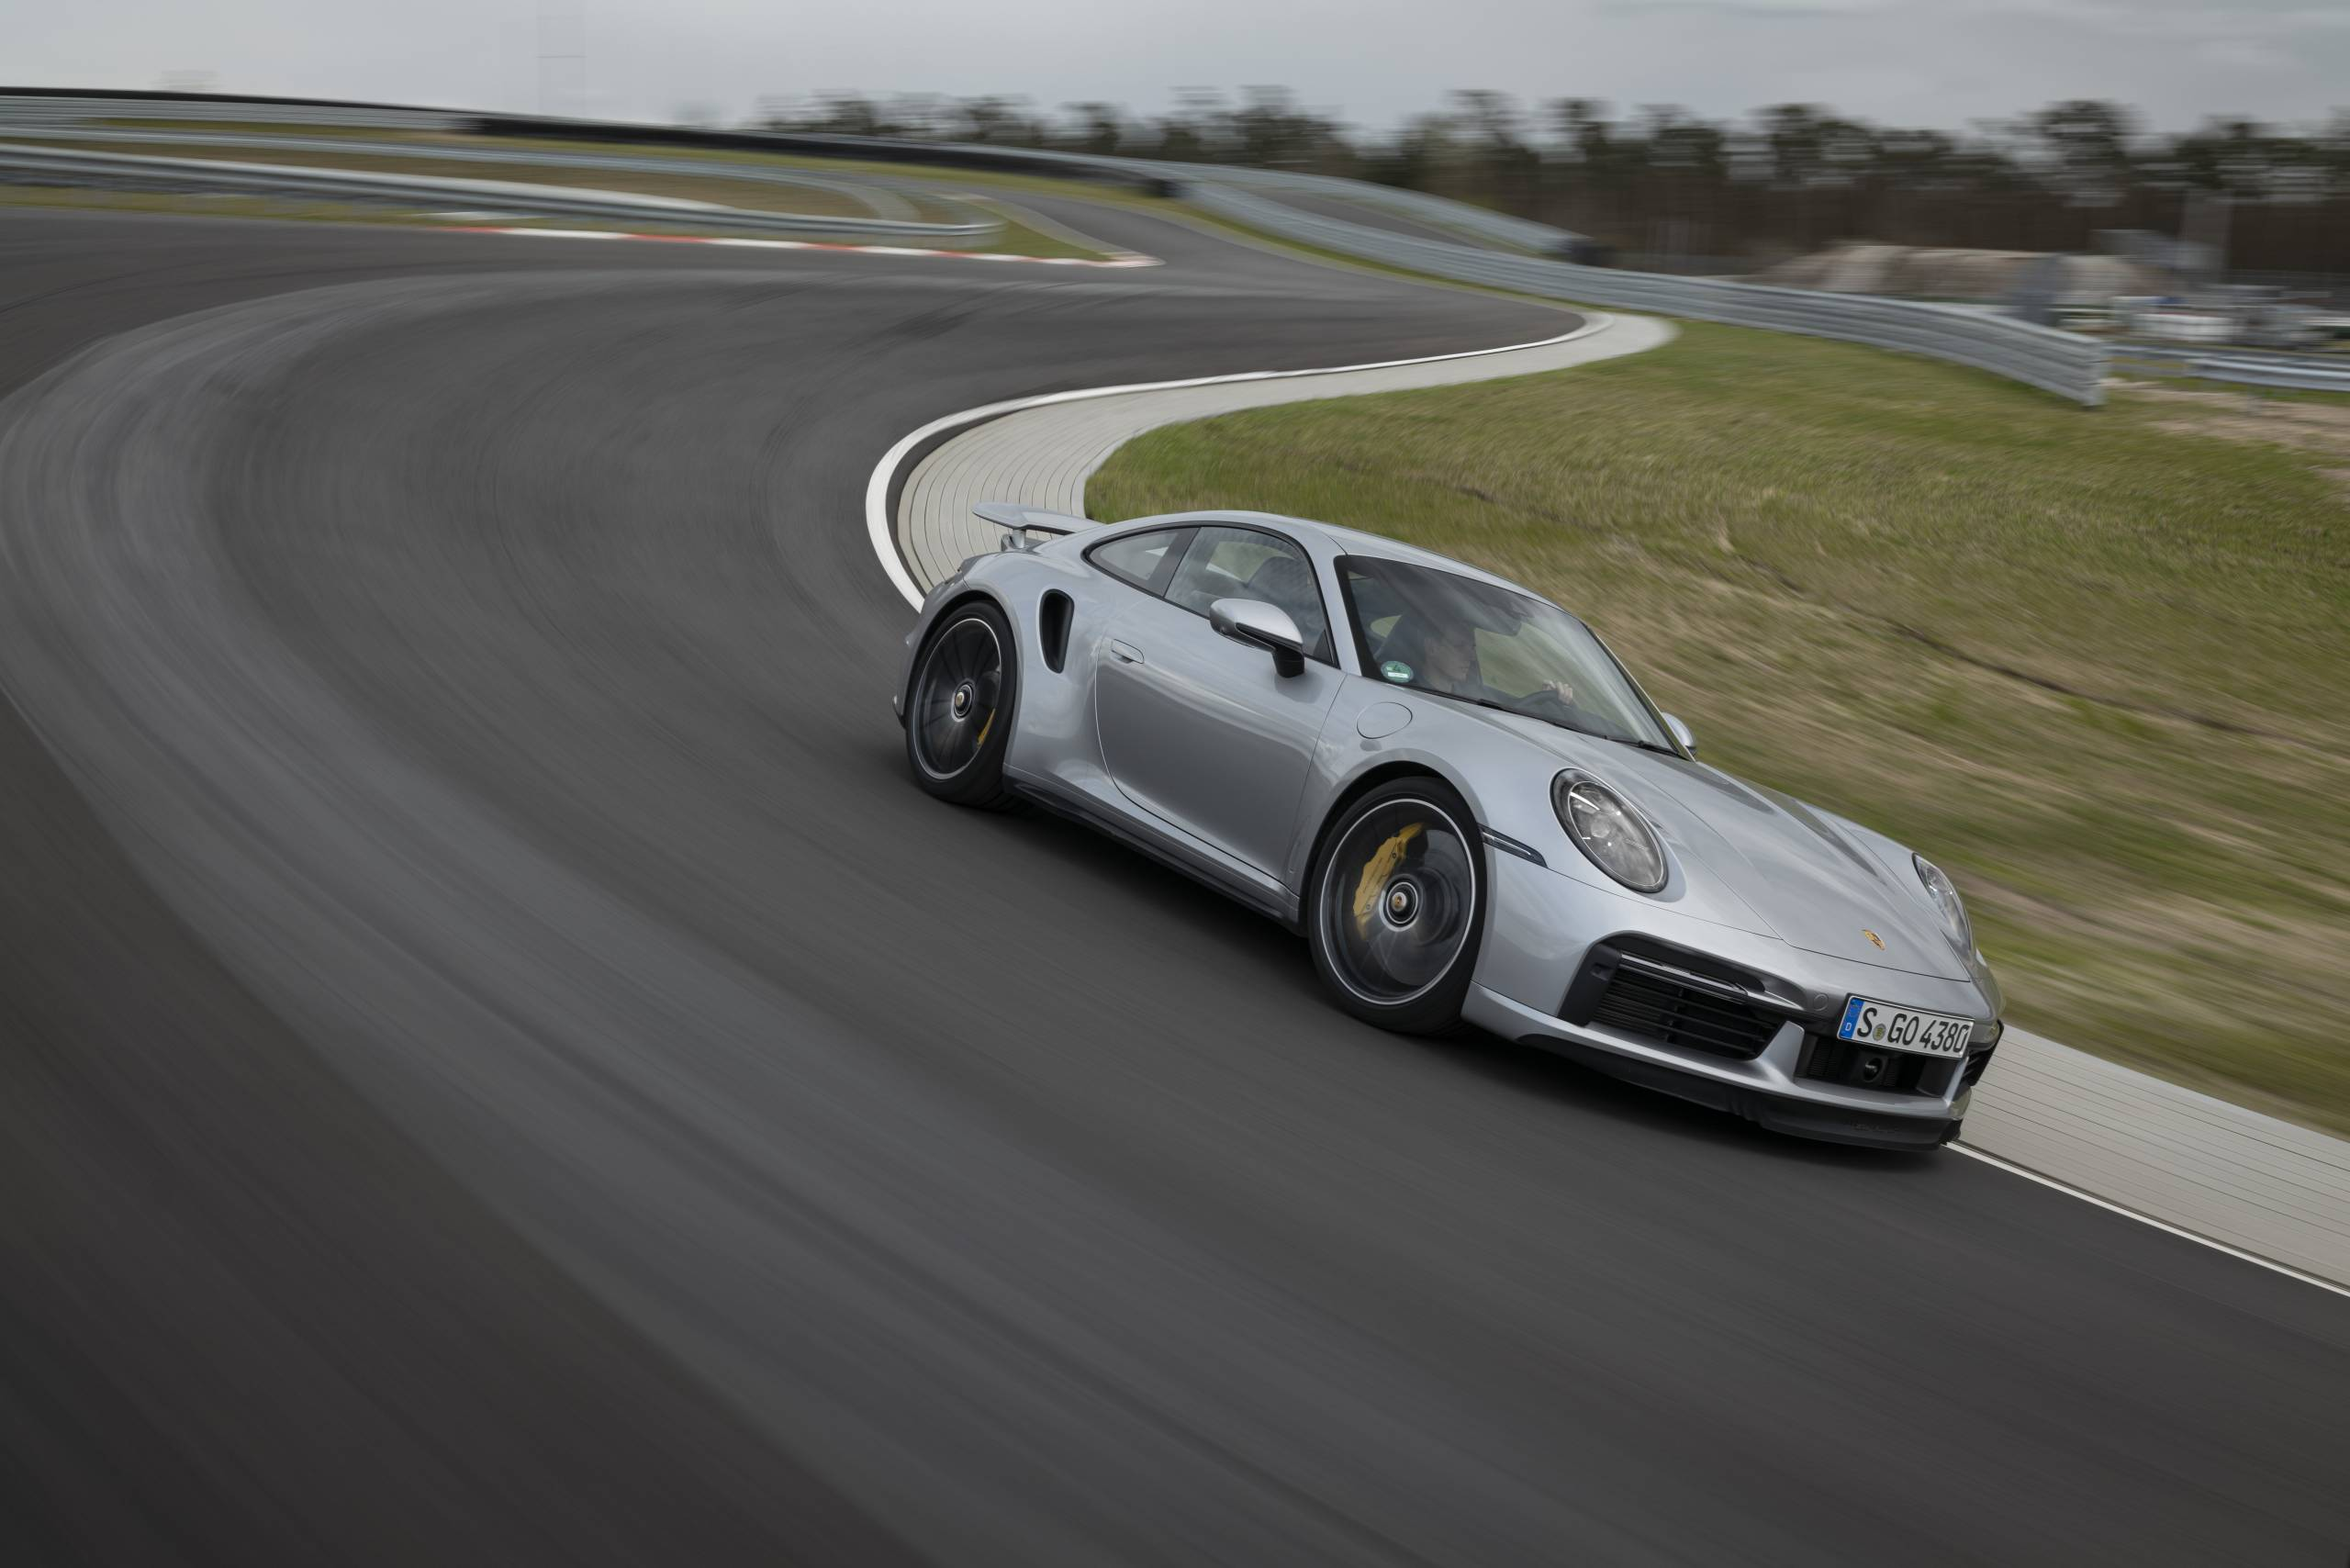 2021 Porsche 911 Turbo S Receives Lightweight And Sport Packages Slashgear